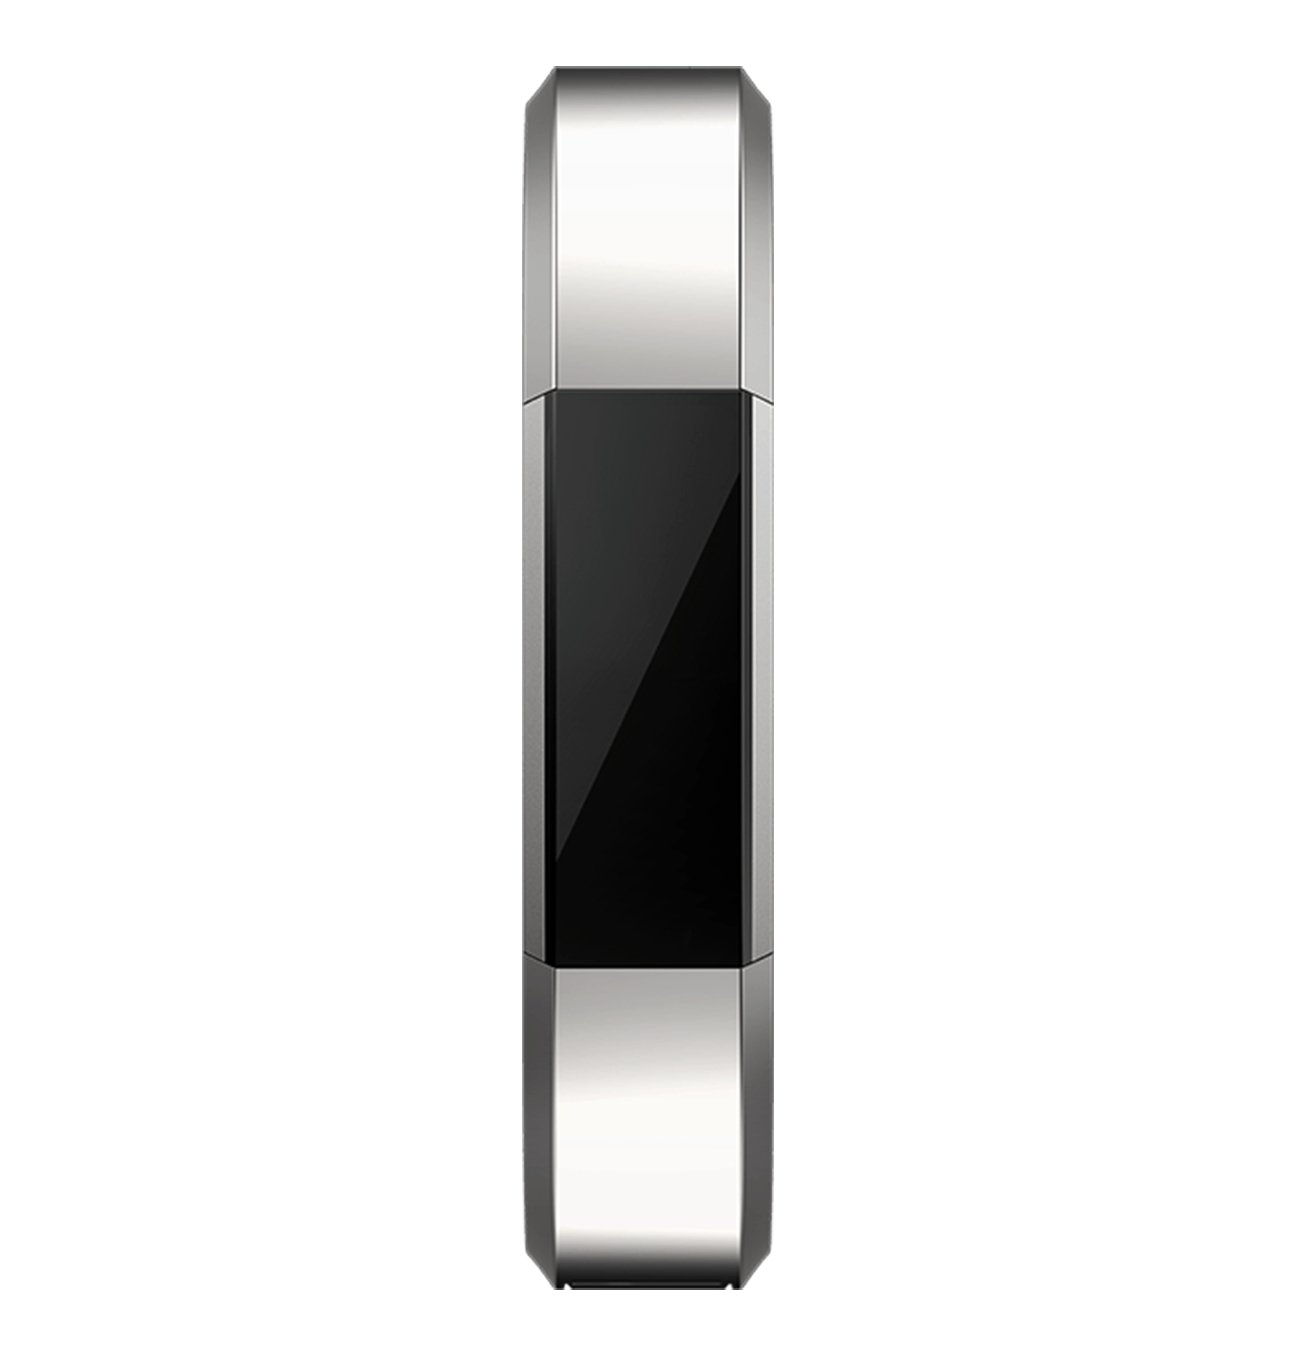 Image of Fitbit Alta Silver Metal Bracelet Accessory Band - Small.